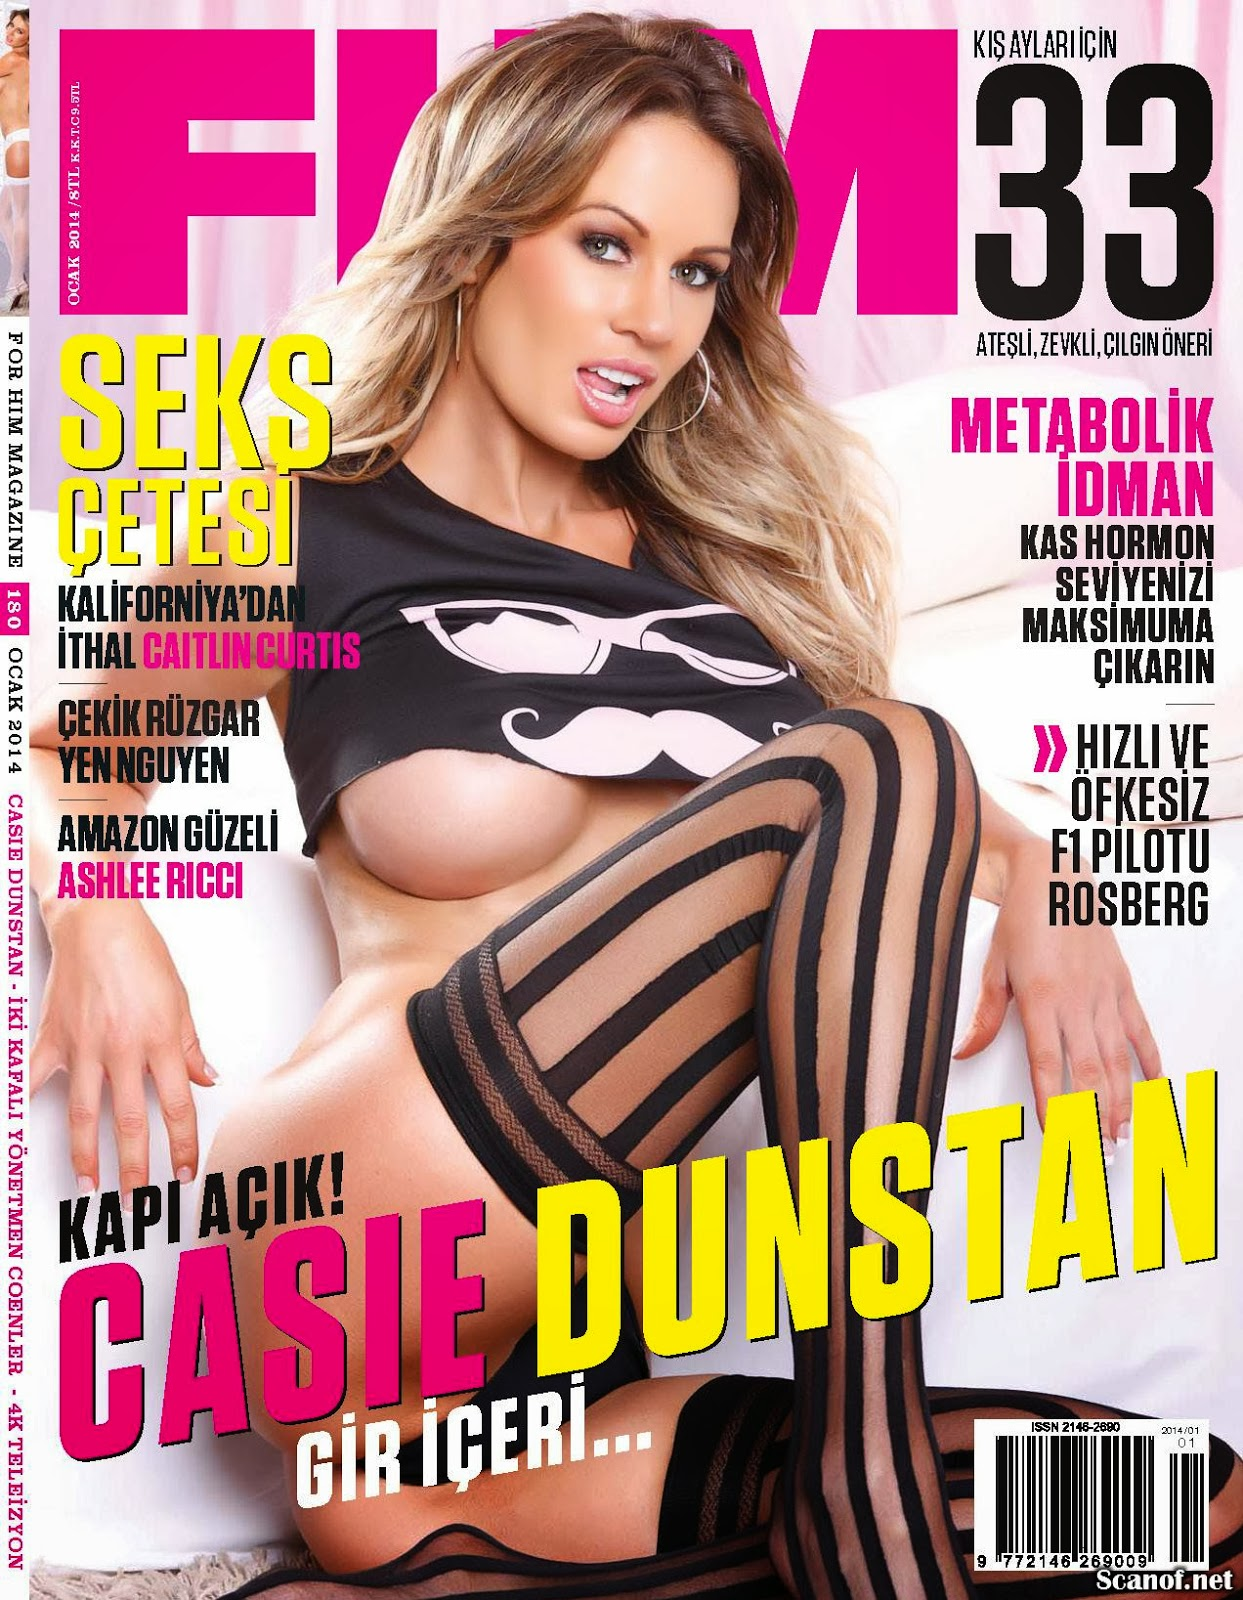 Magazine Photoshoot : Casie Dunstan Photoshoot For FHM Magazine Turkey January 2014 Issue